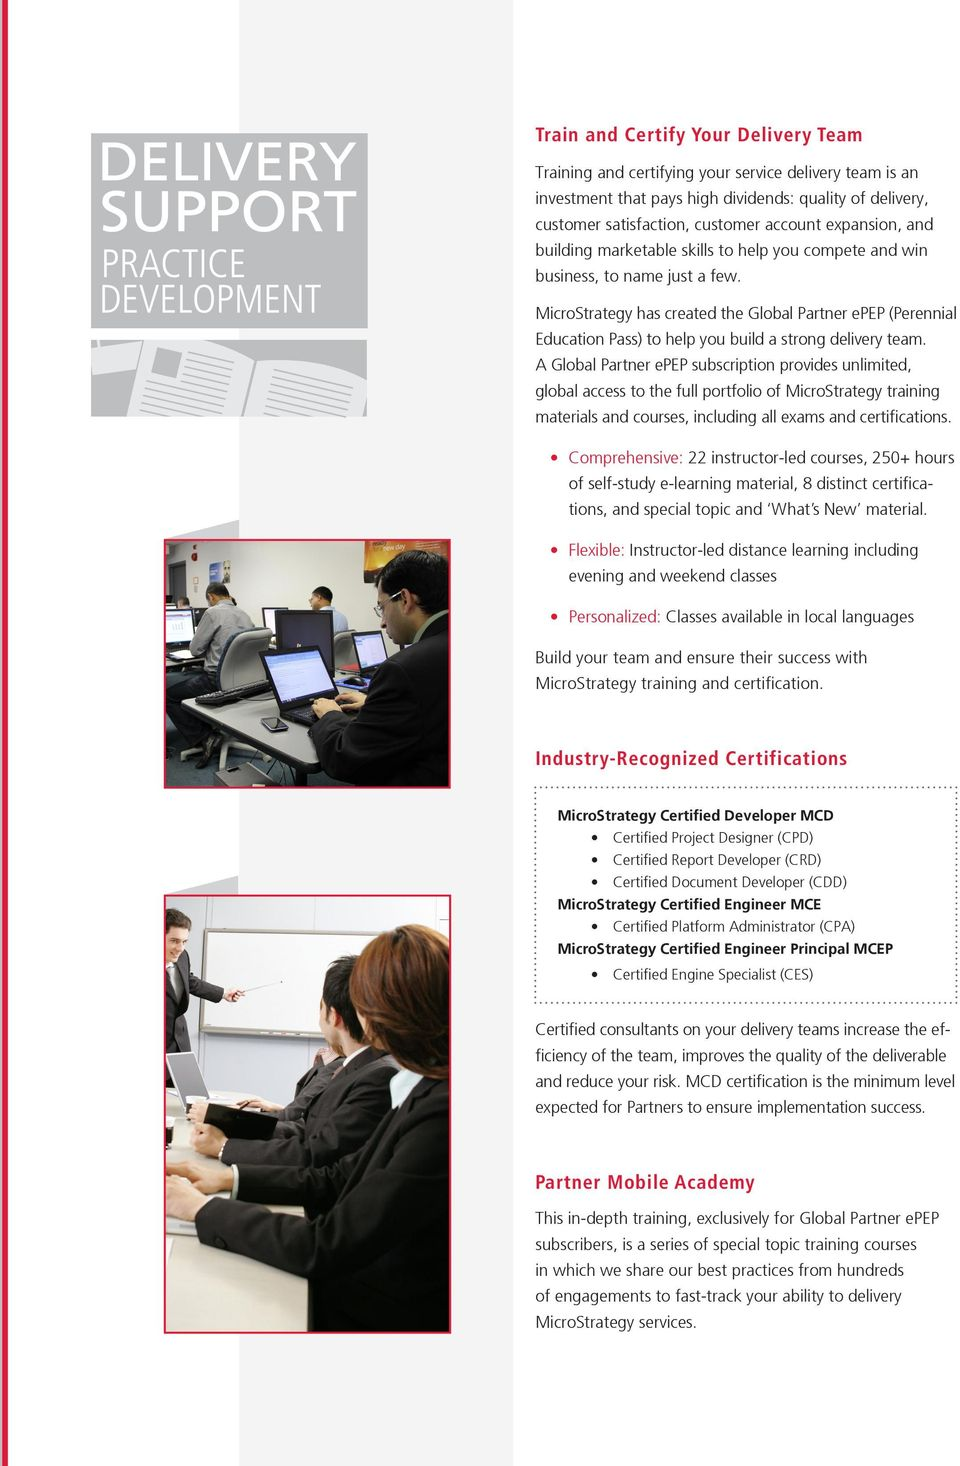 MicroStrategy has created the Global Partner epep (Perennial Education Pass) to help you build a strong delivery team.